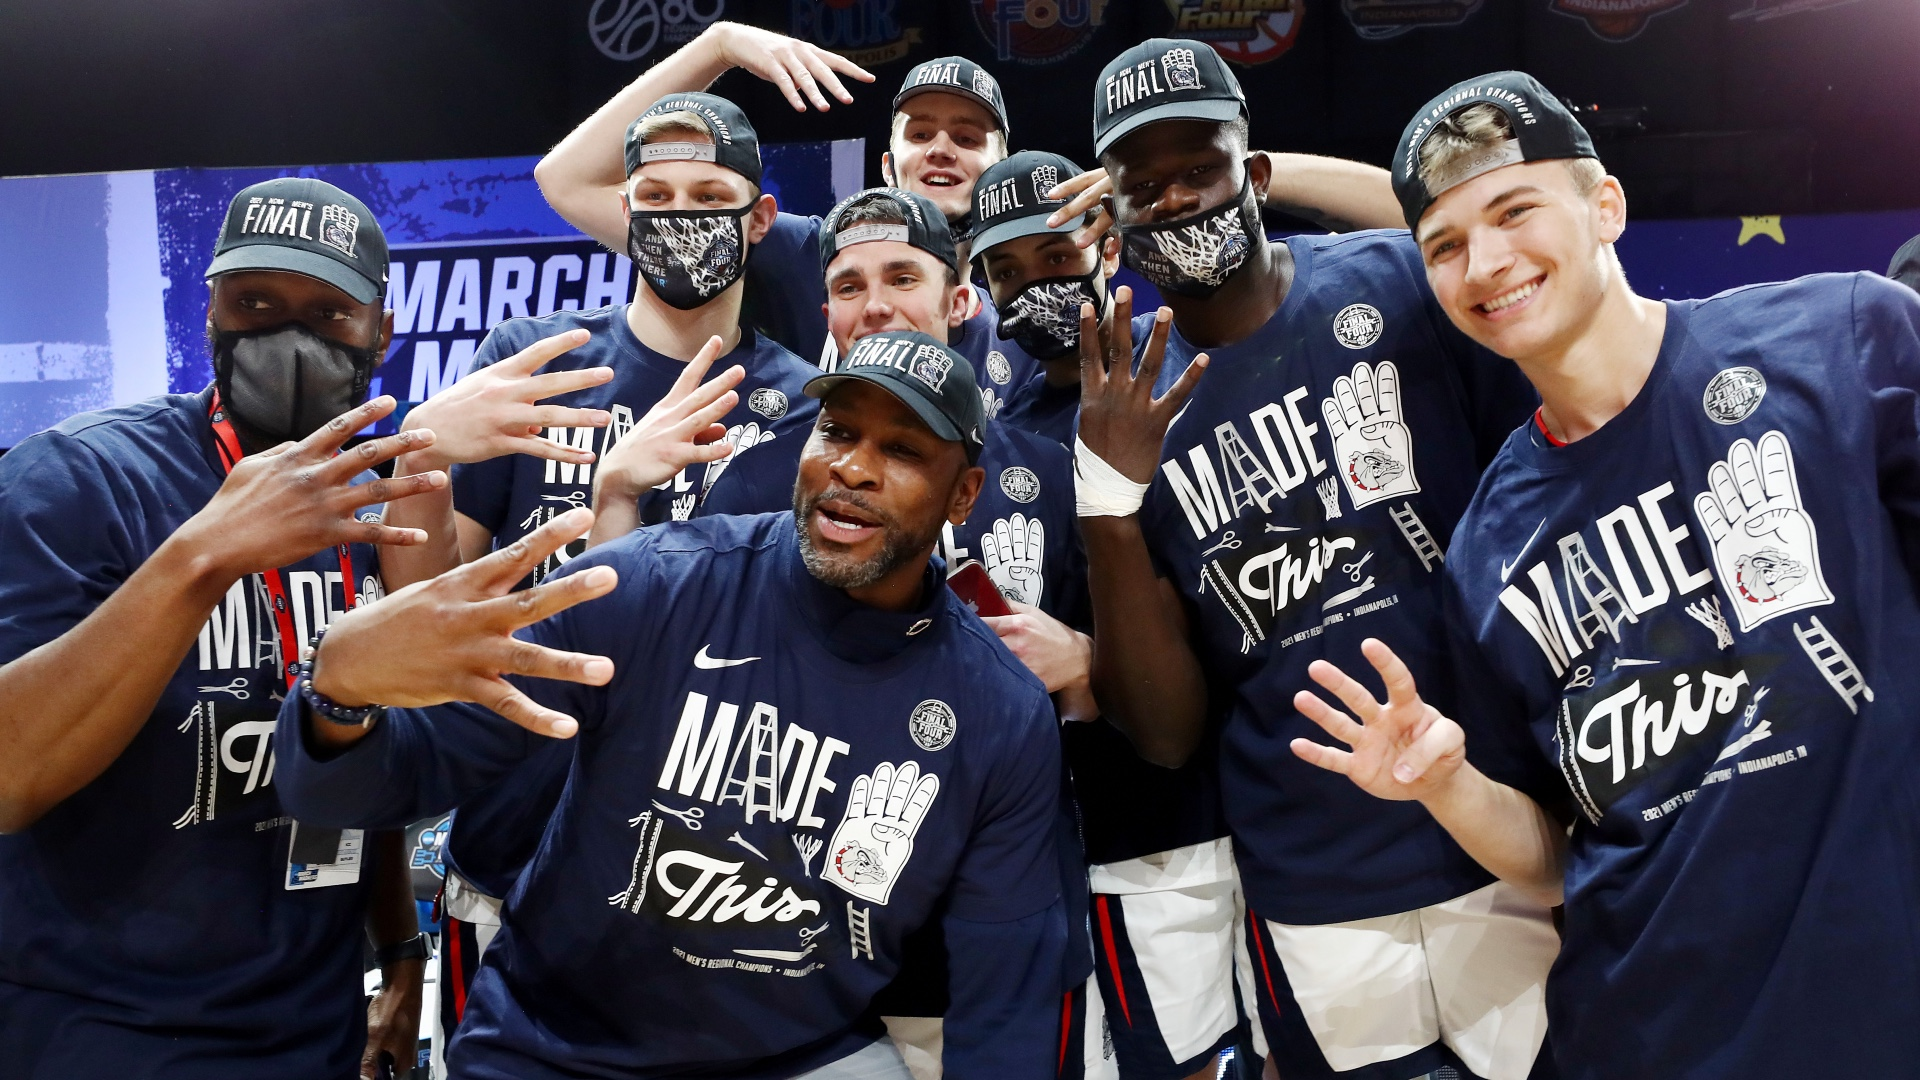 Qualifying teams to win everything from the Final Four, from the Zags to the Bruins